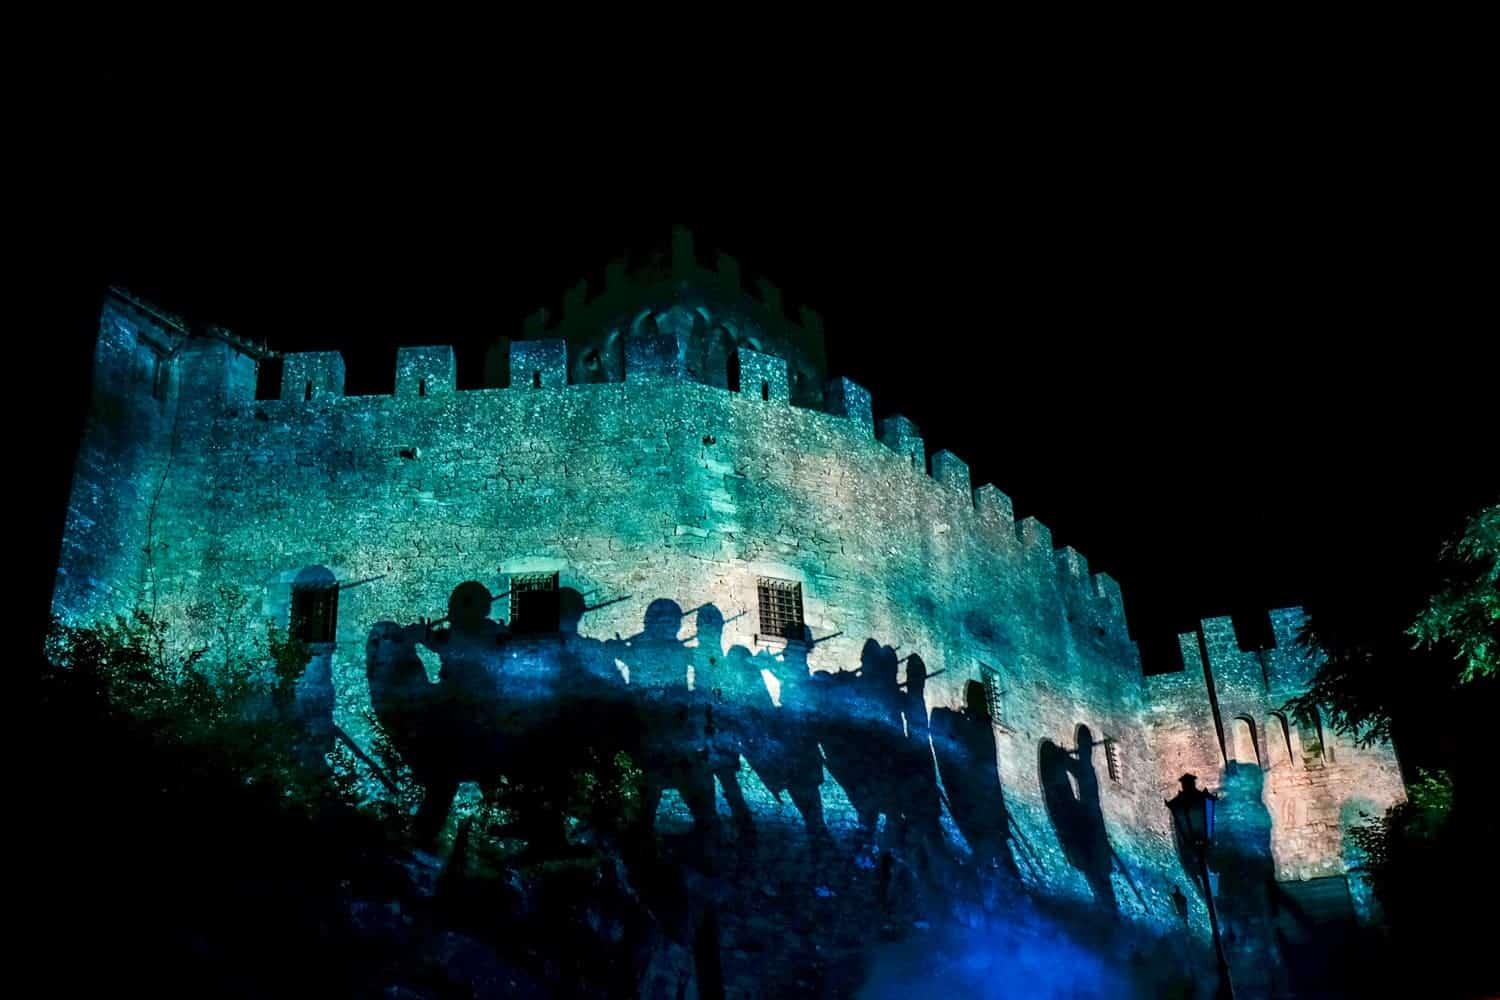 Medieval Festival in San Marino, Medieval Days Tower Light Show